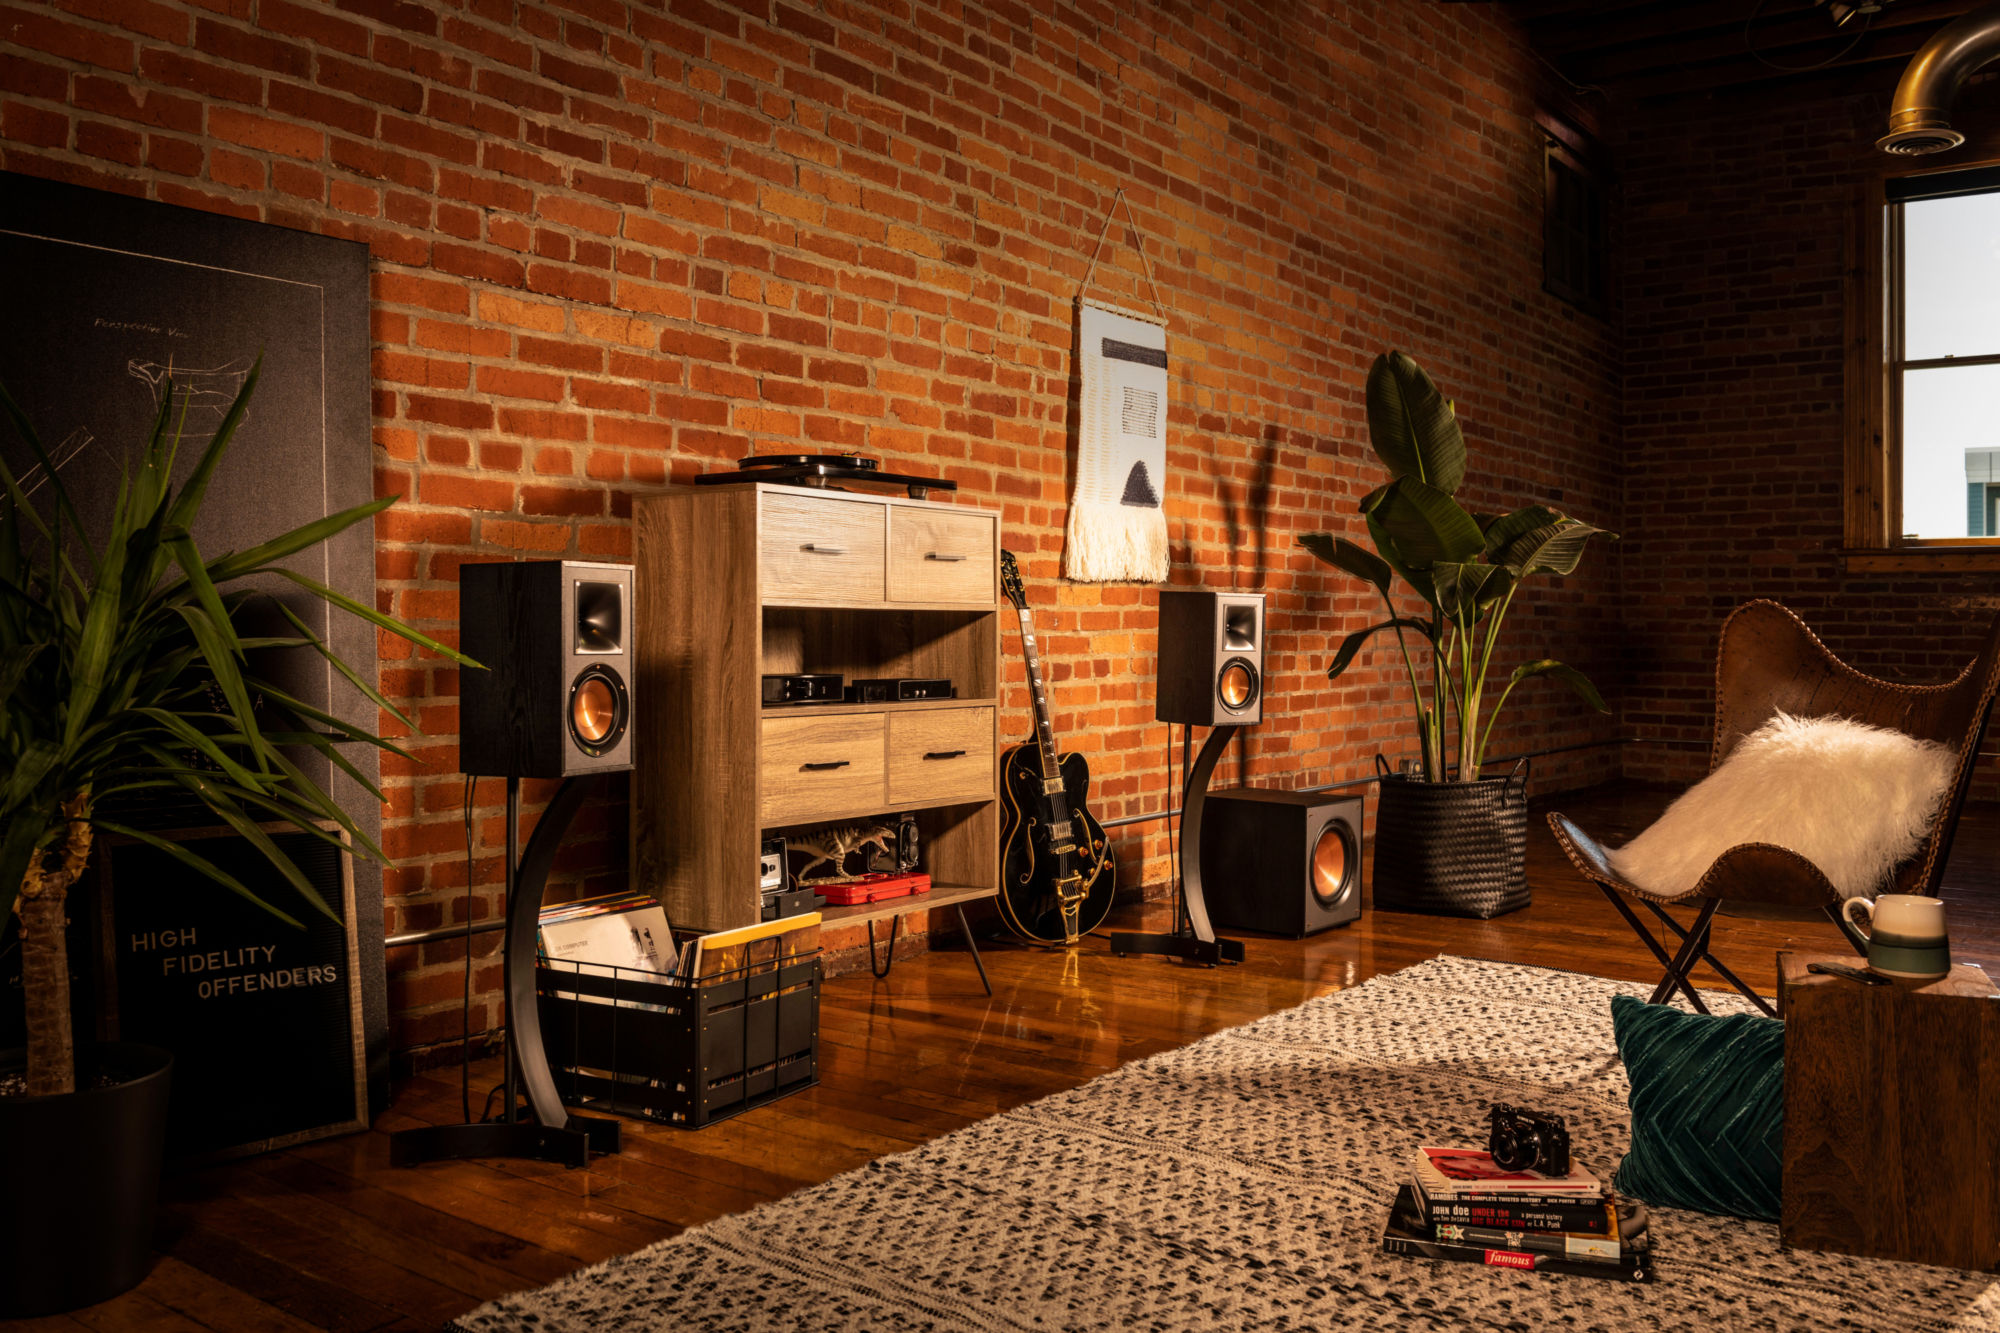 Klipsch Home Audio Set Up in a living room